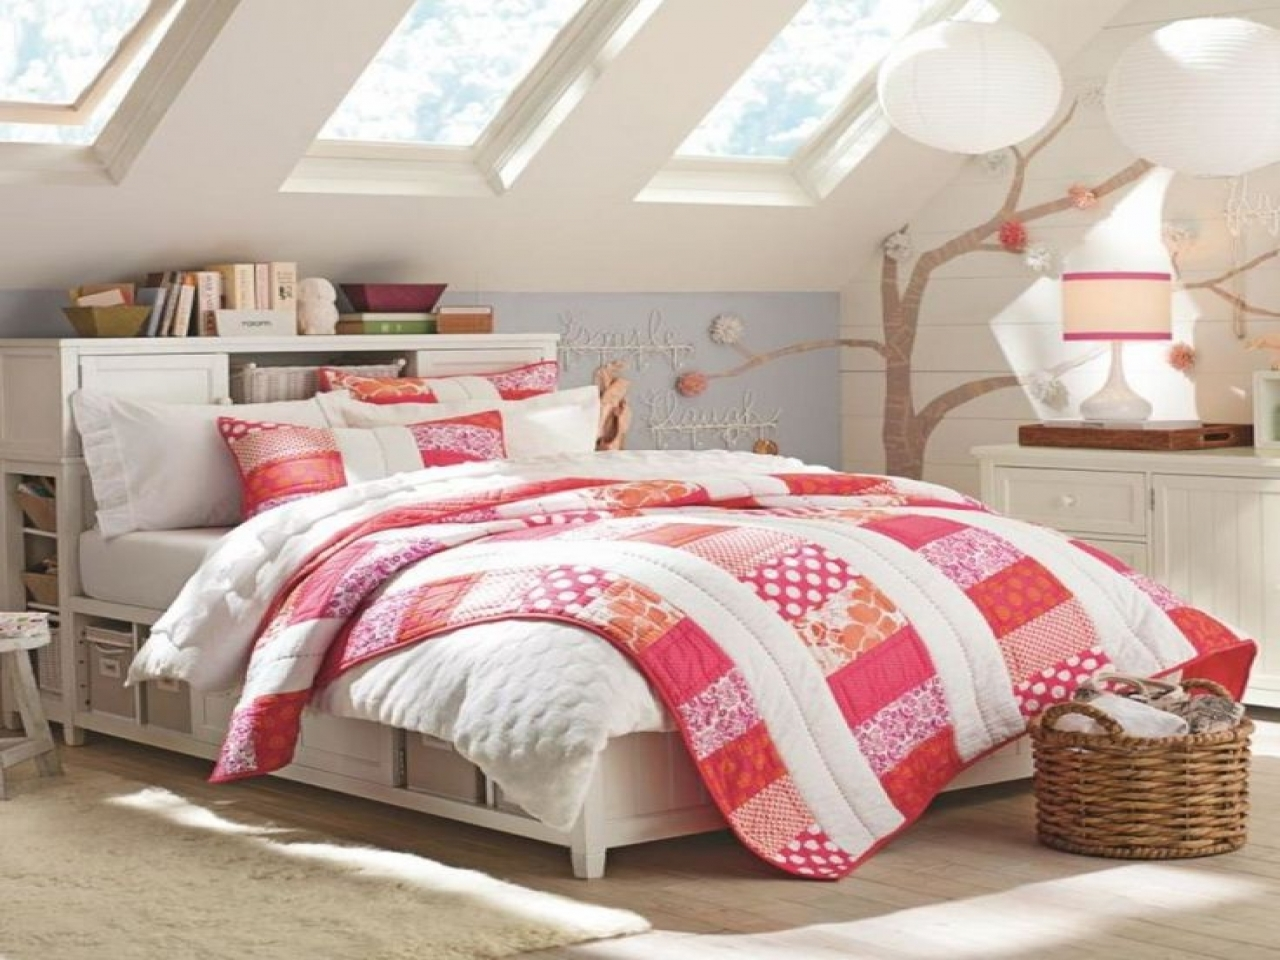 Small Attic Room Designs Bedrooms With Slanted Teenage